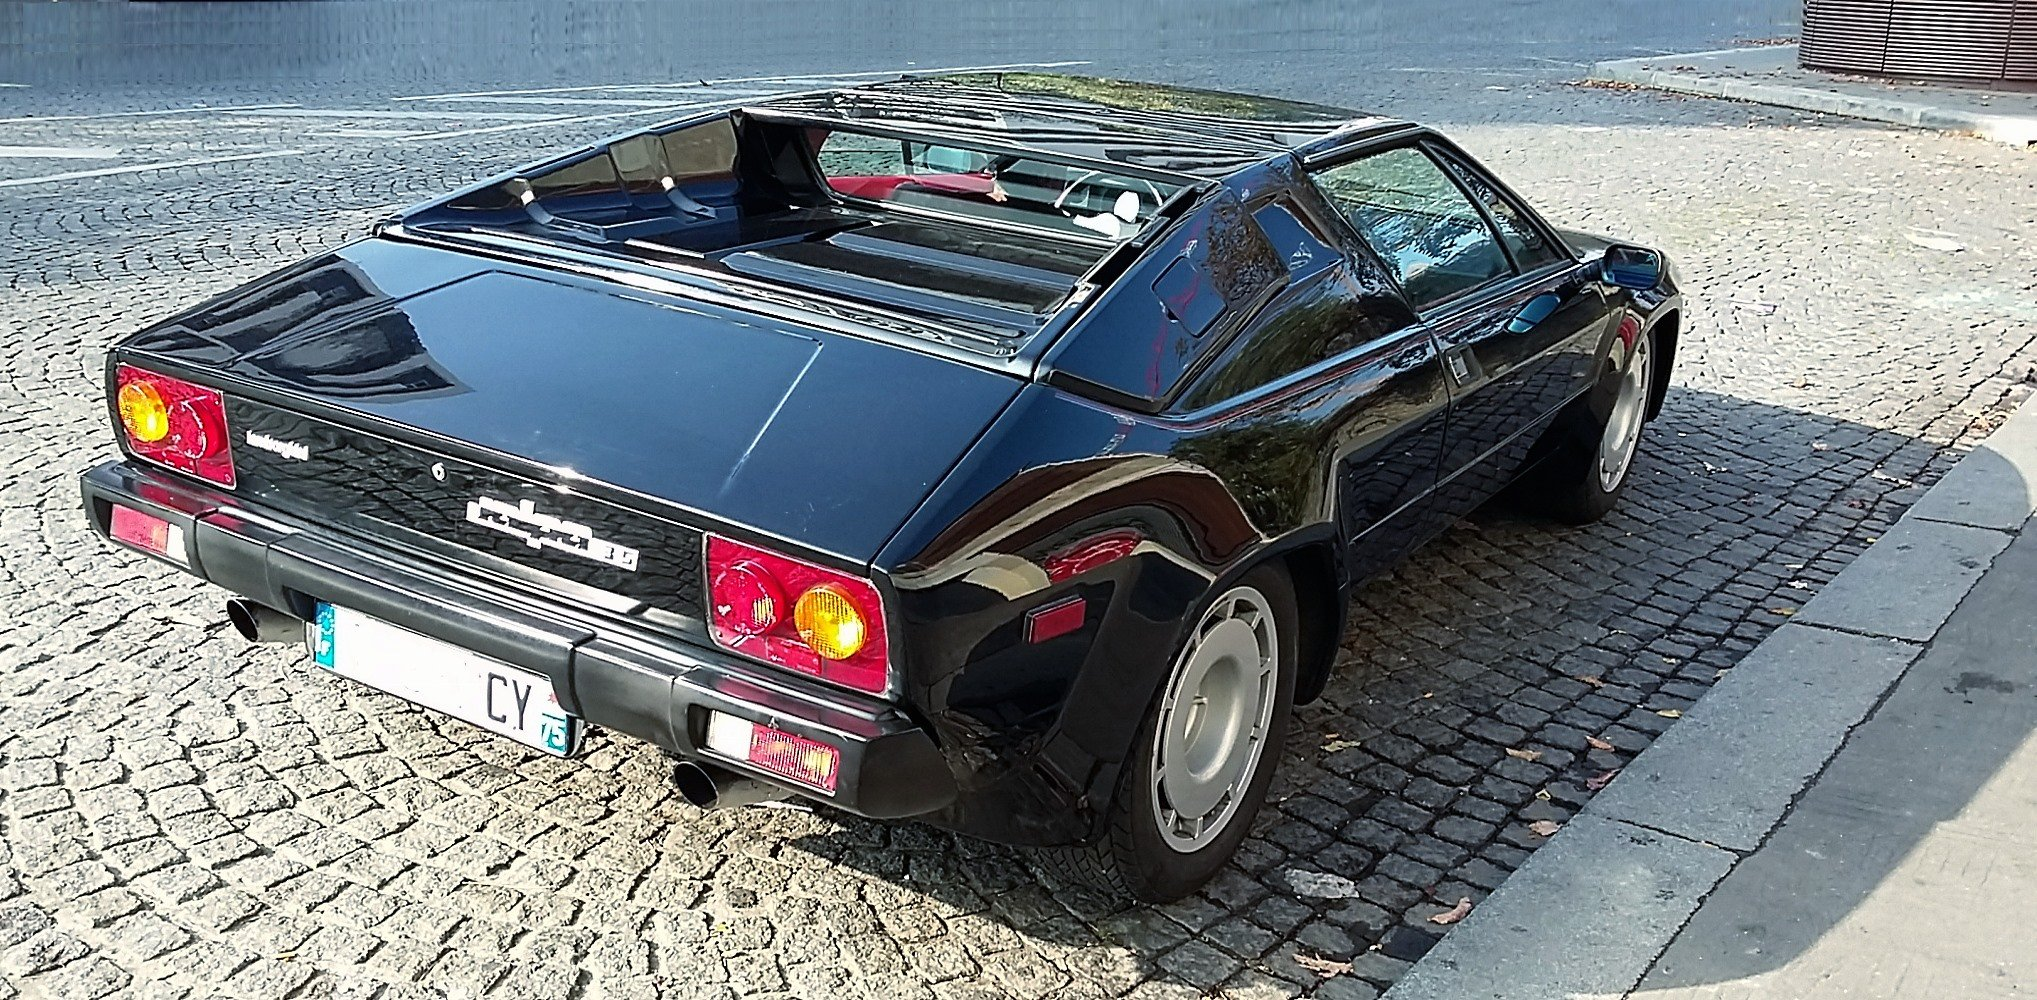 1984 The top-gun V8 Lambo, only 300 LHD Euro [TOO LATE] For Sale (picture 2 of 6)